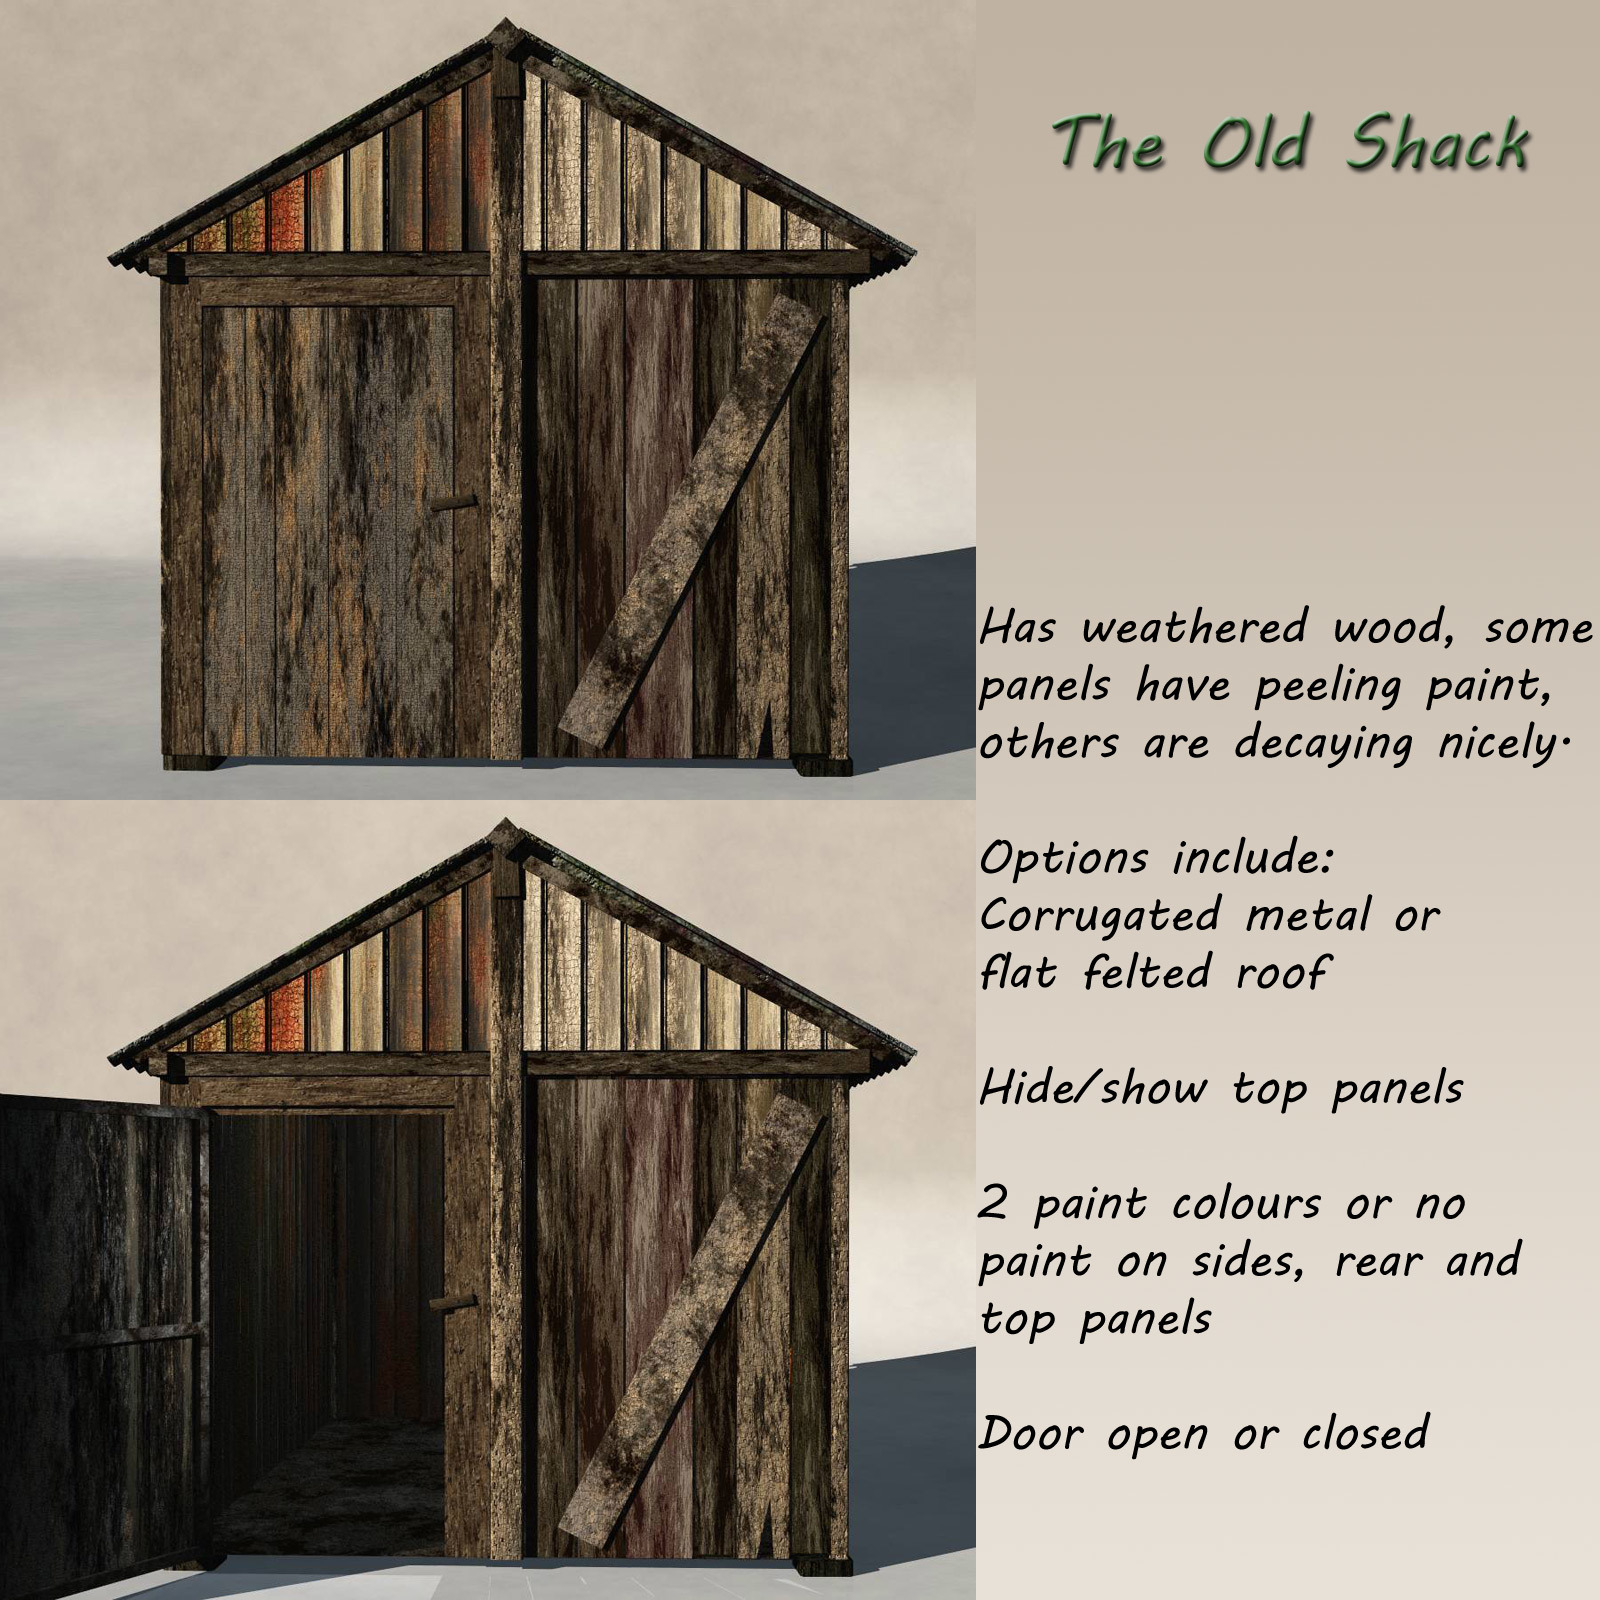 Old Shack by gillbrooks